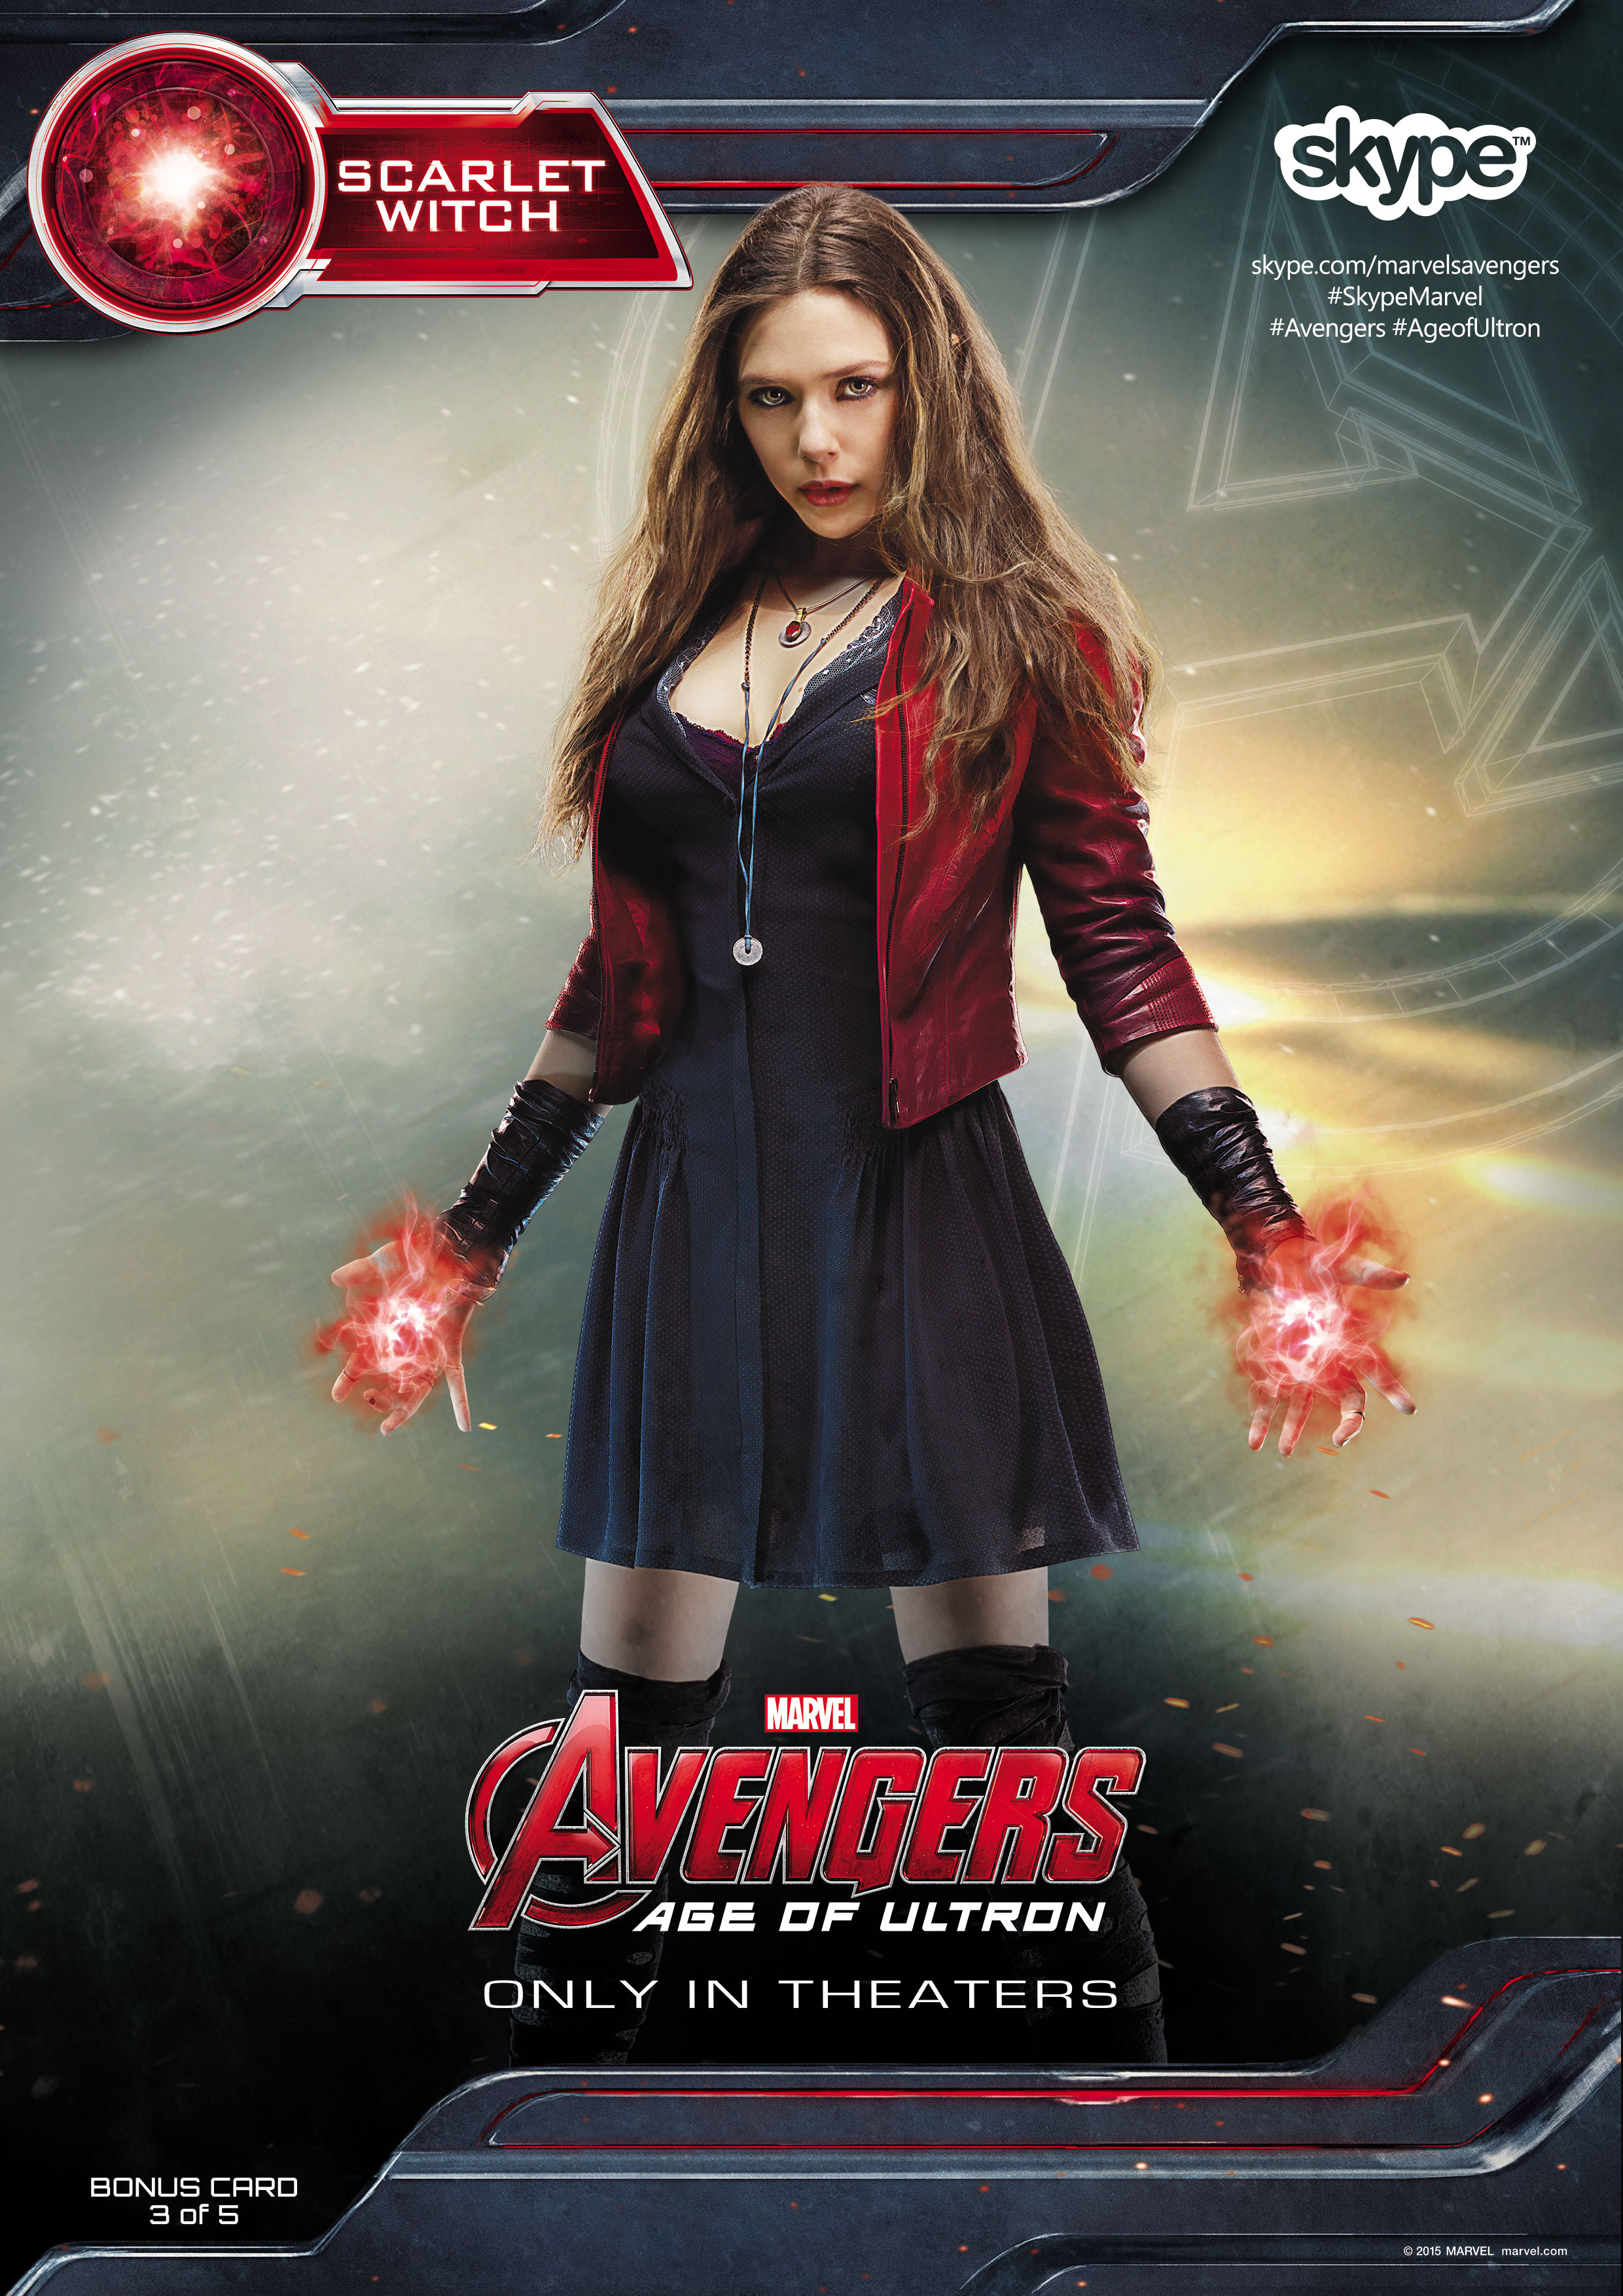 Scarlet Witch Avengers 2 Source Images Lunar S Square